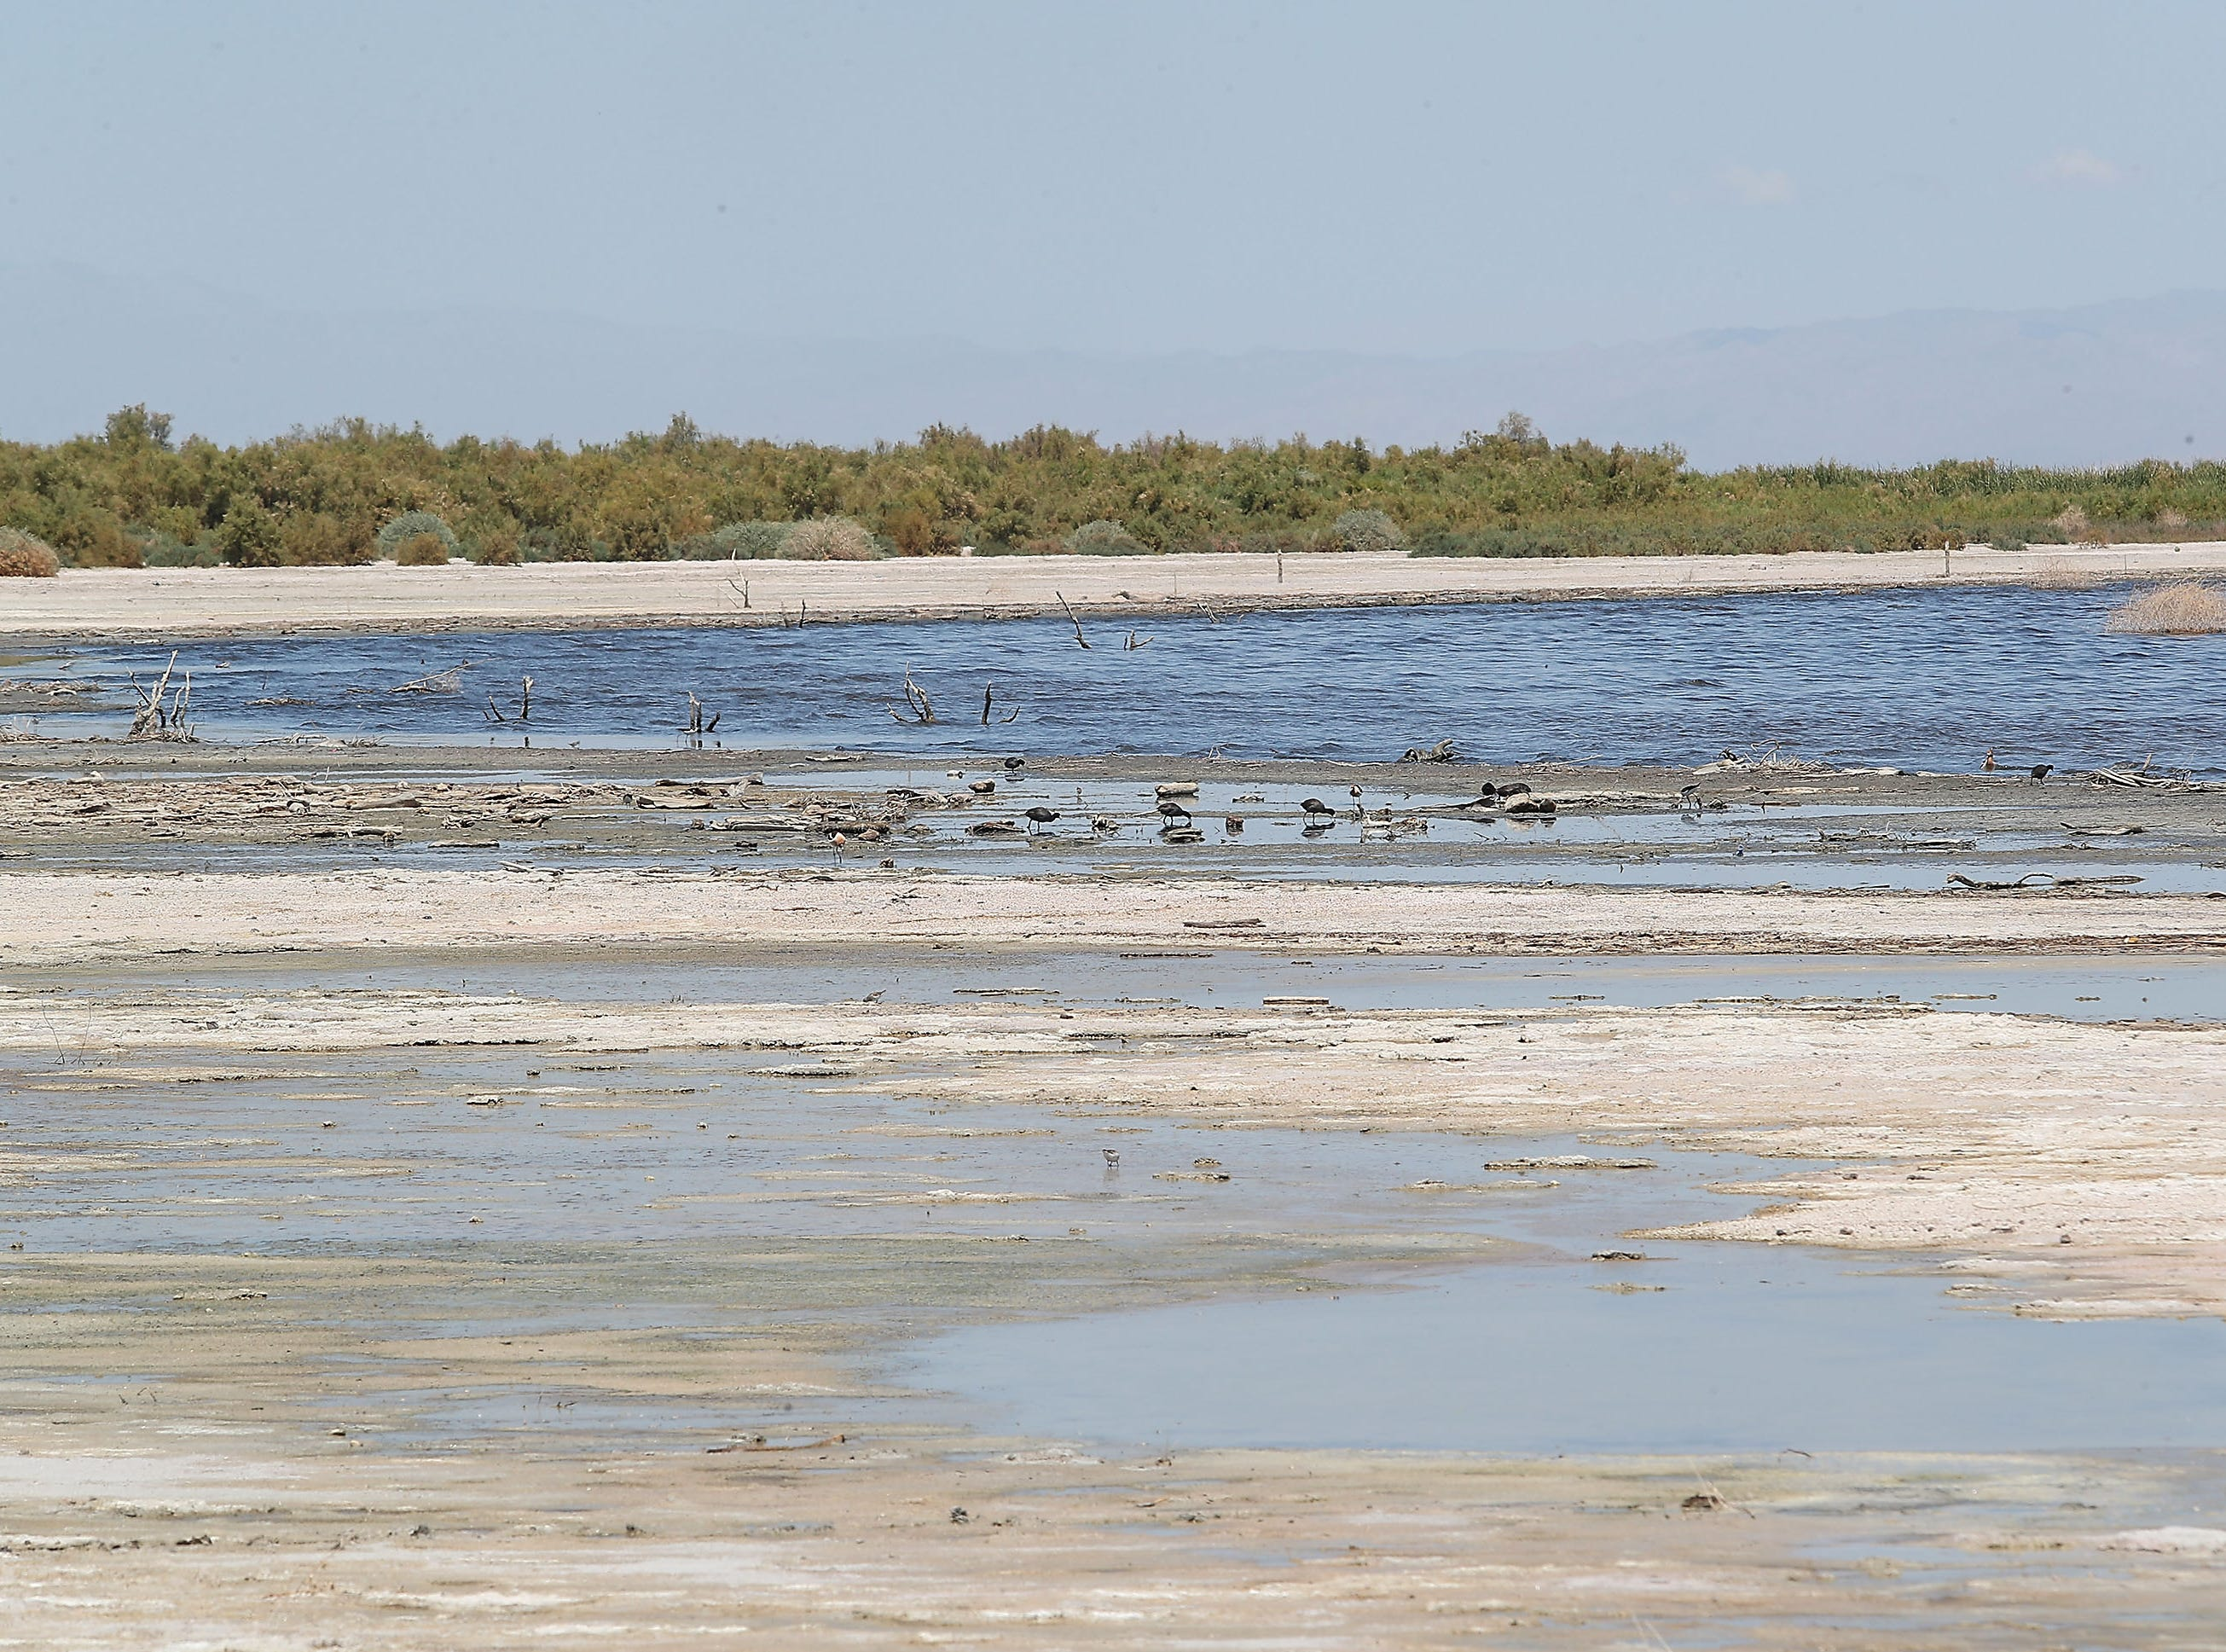 Stagnant water and mud pools just beneath the surface of the playa where the Salton Sea continues to shrink at the northwest end of Salton Sea, April 30, 2019.